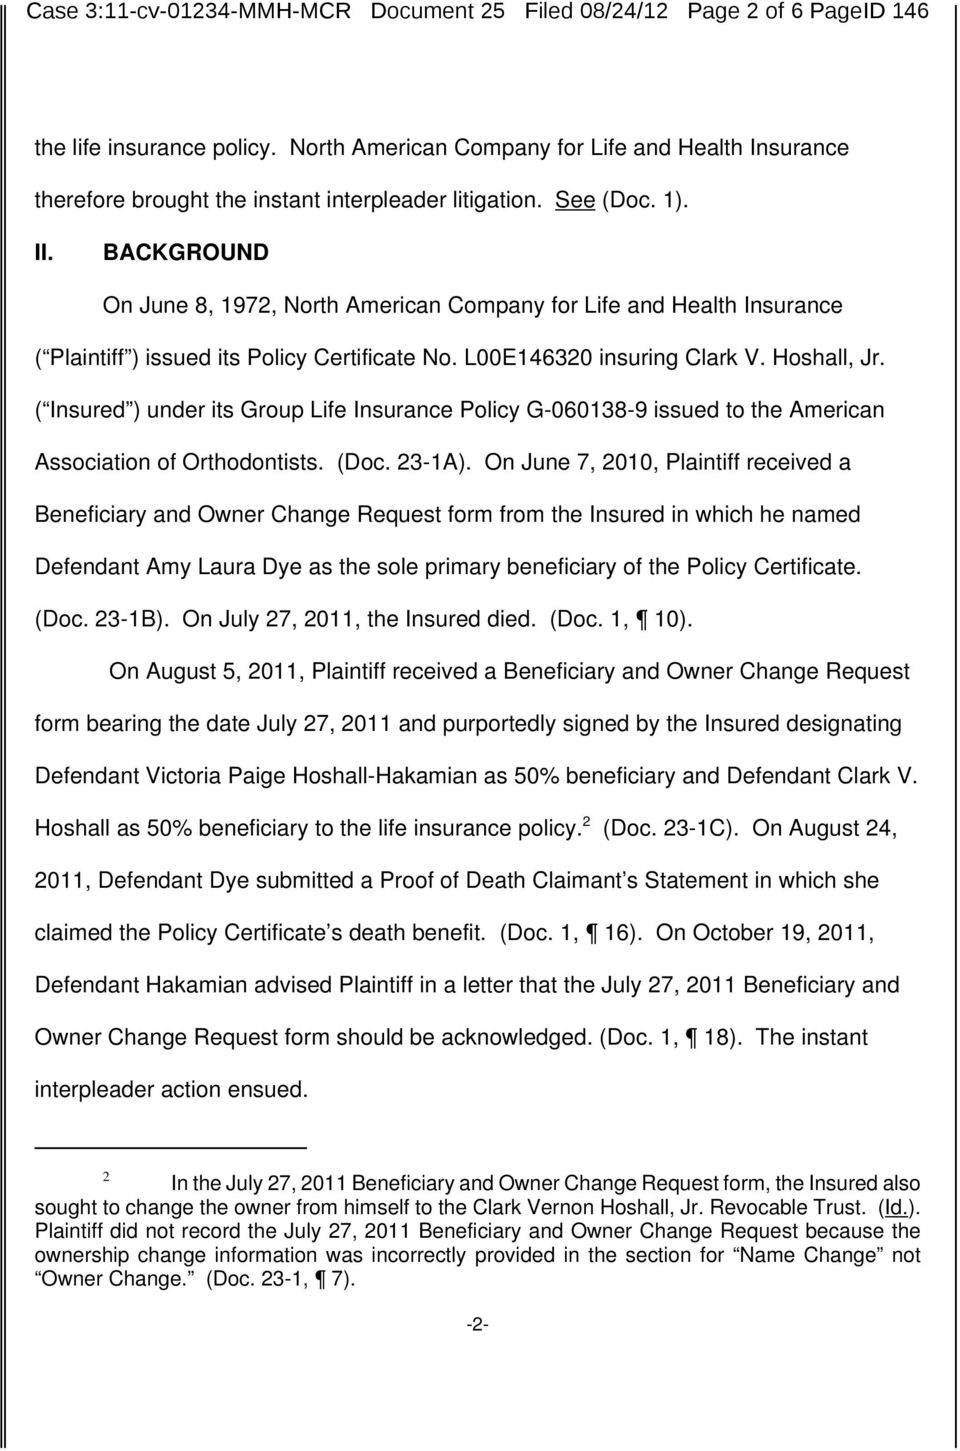 BACKGROUND On June 8, 1972, North American Company for Life and Health Insurance ( Plaintiff ) issued its Policy Certificate No. L00E146320 insuring Clark V. Hoshall, Jr.